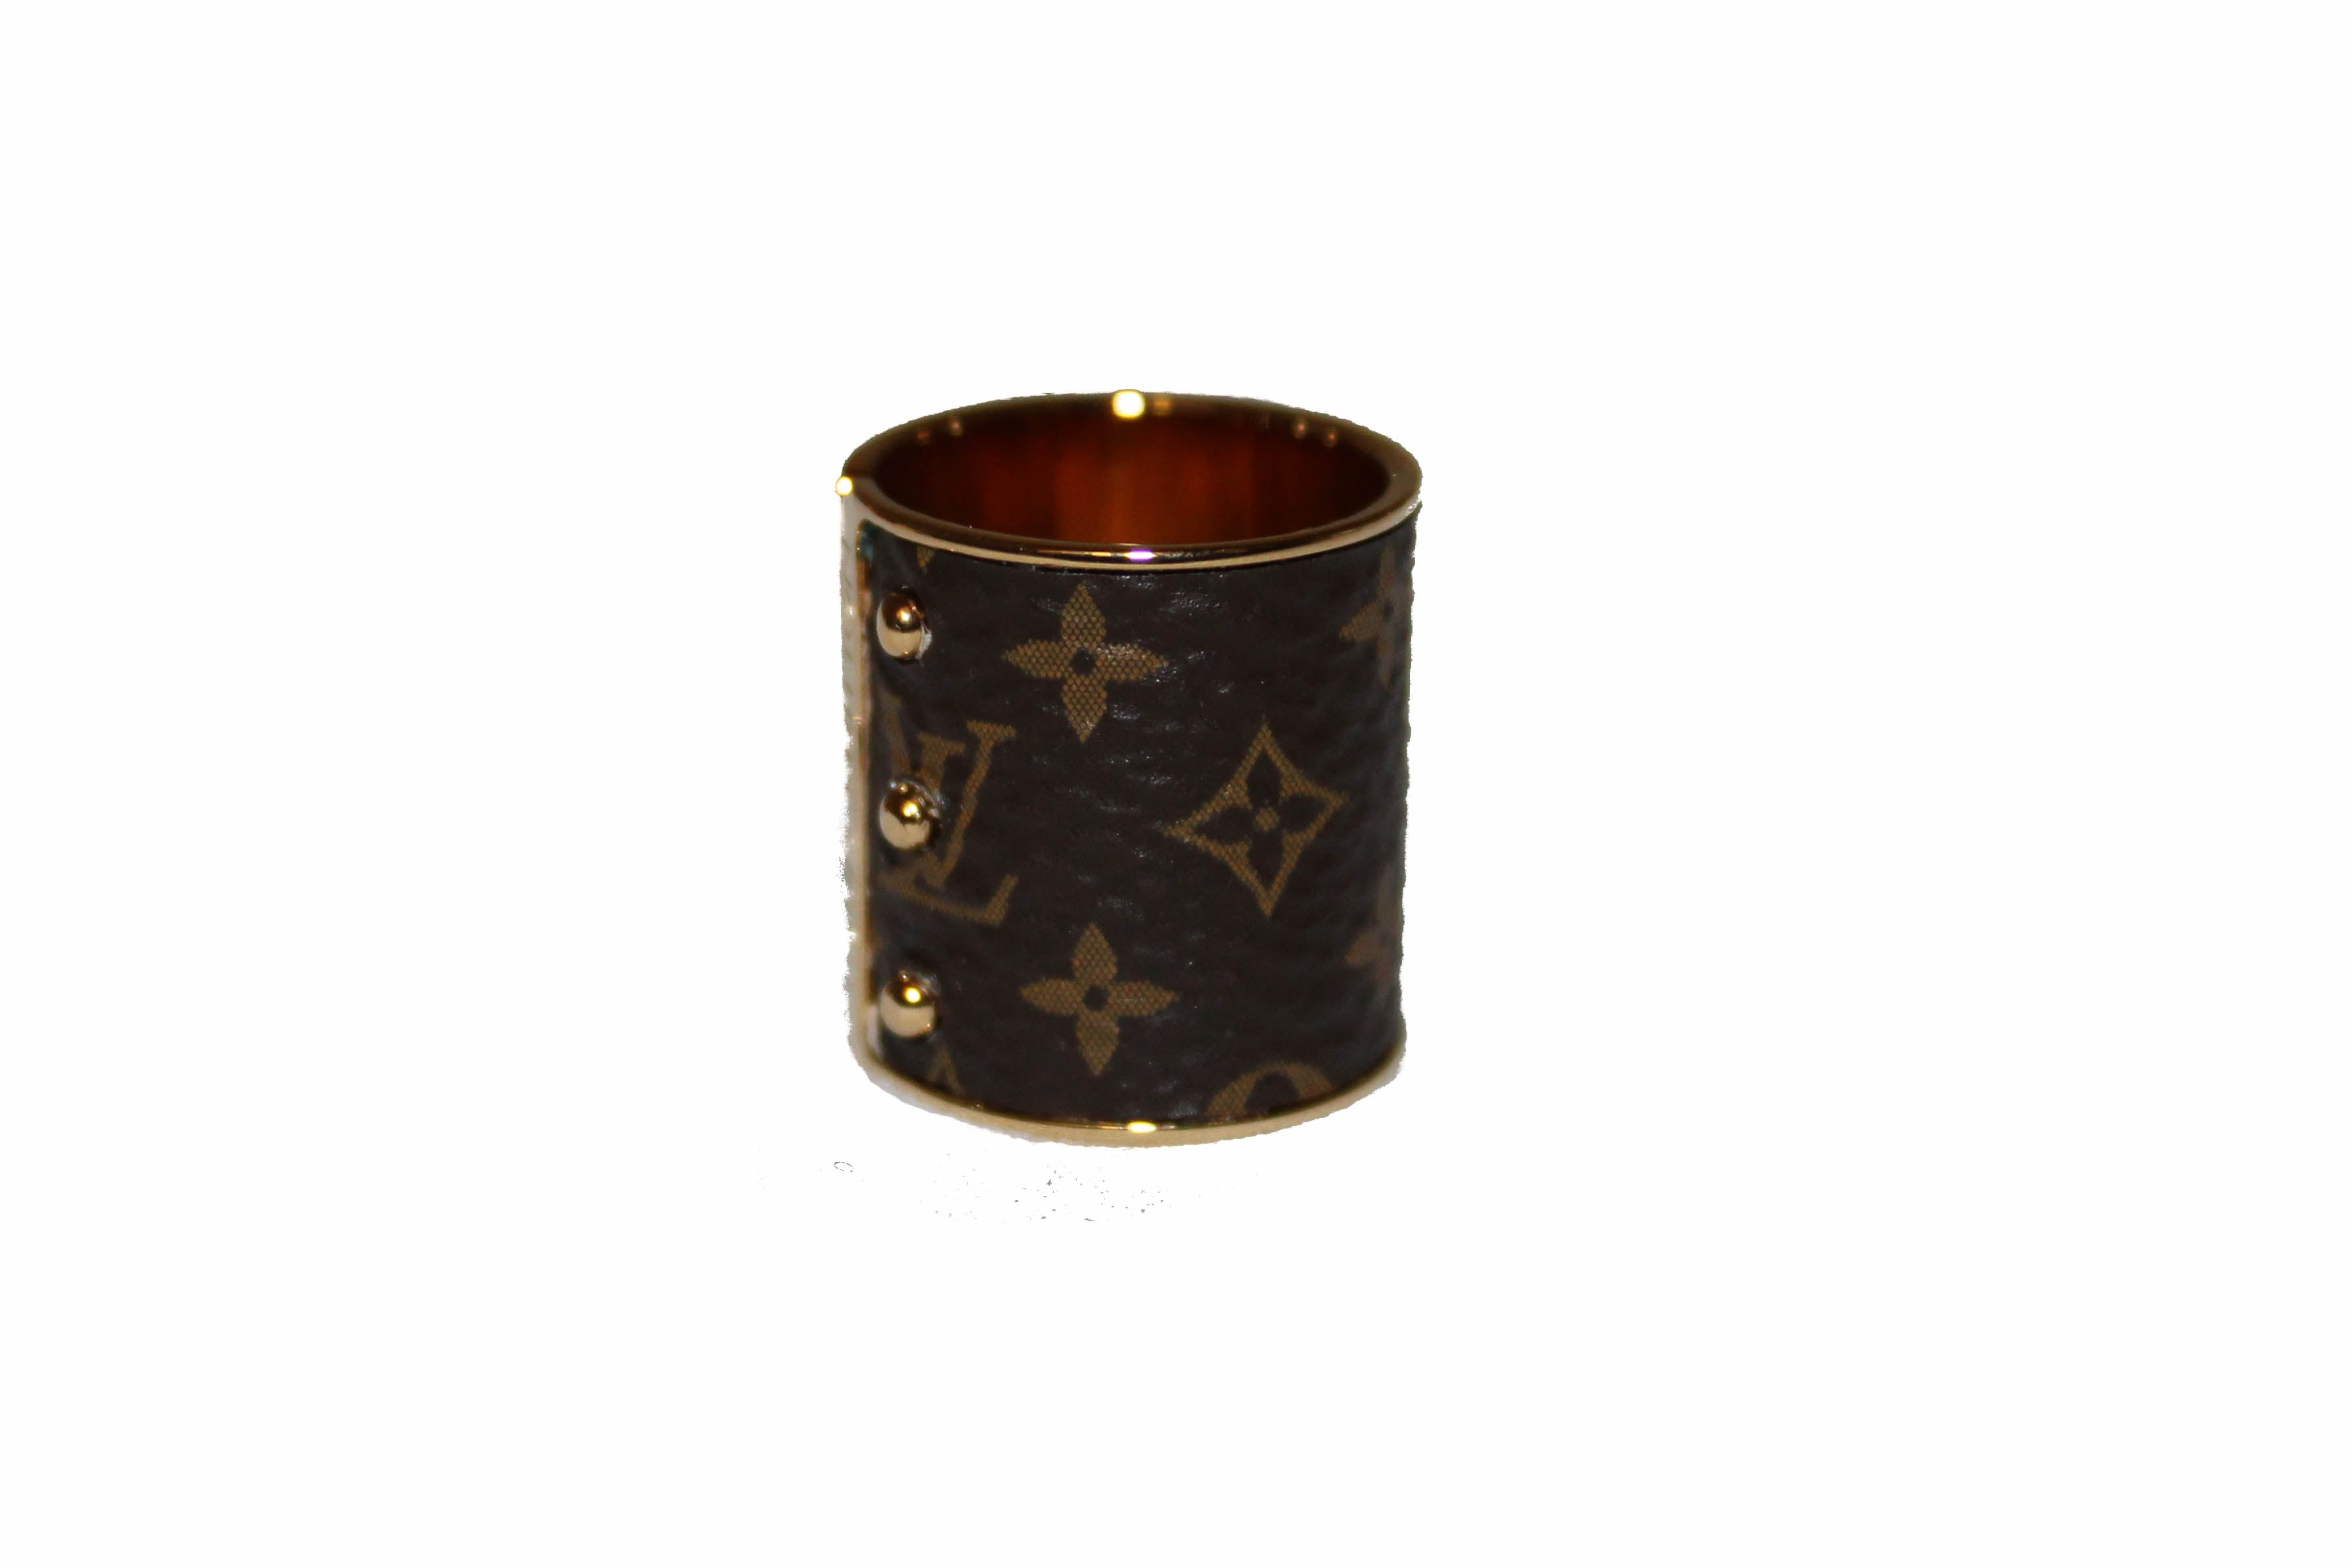 Authentic Louis Vuitton Skin Monogram Band Ring Size 4.5